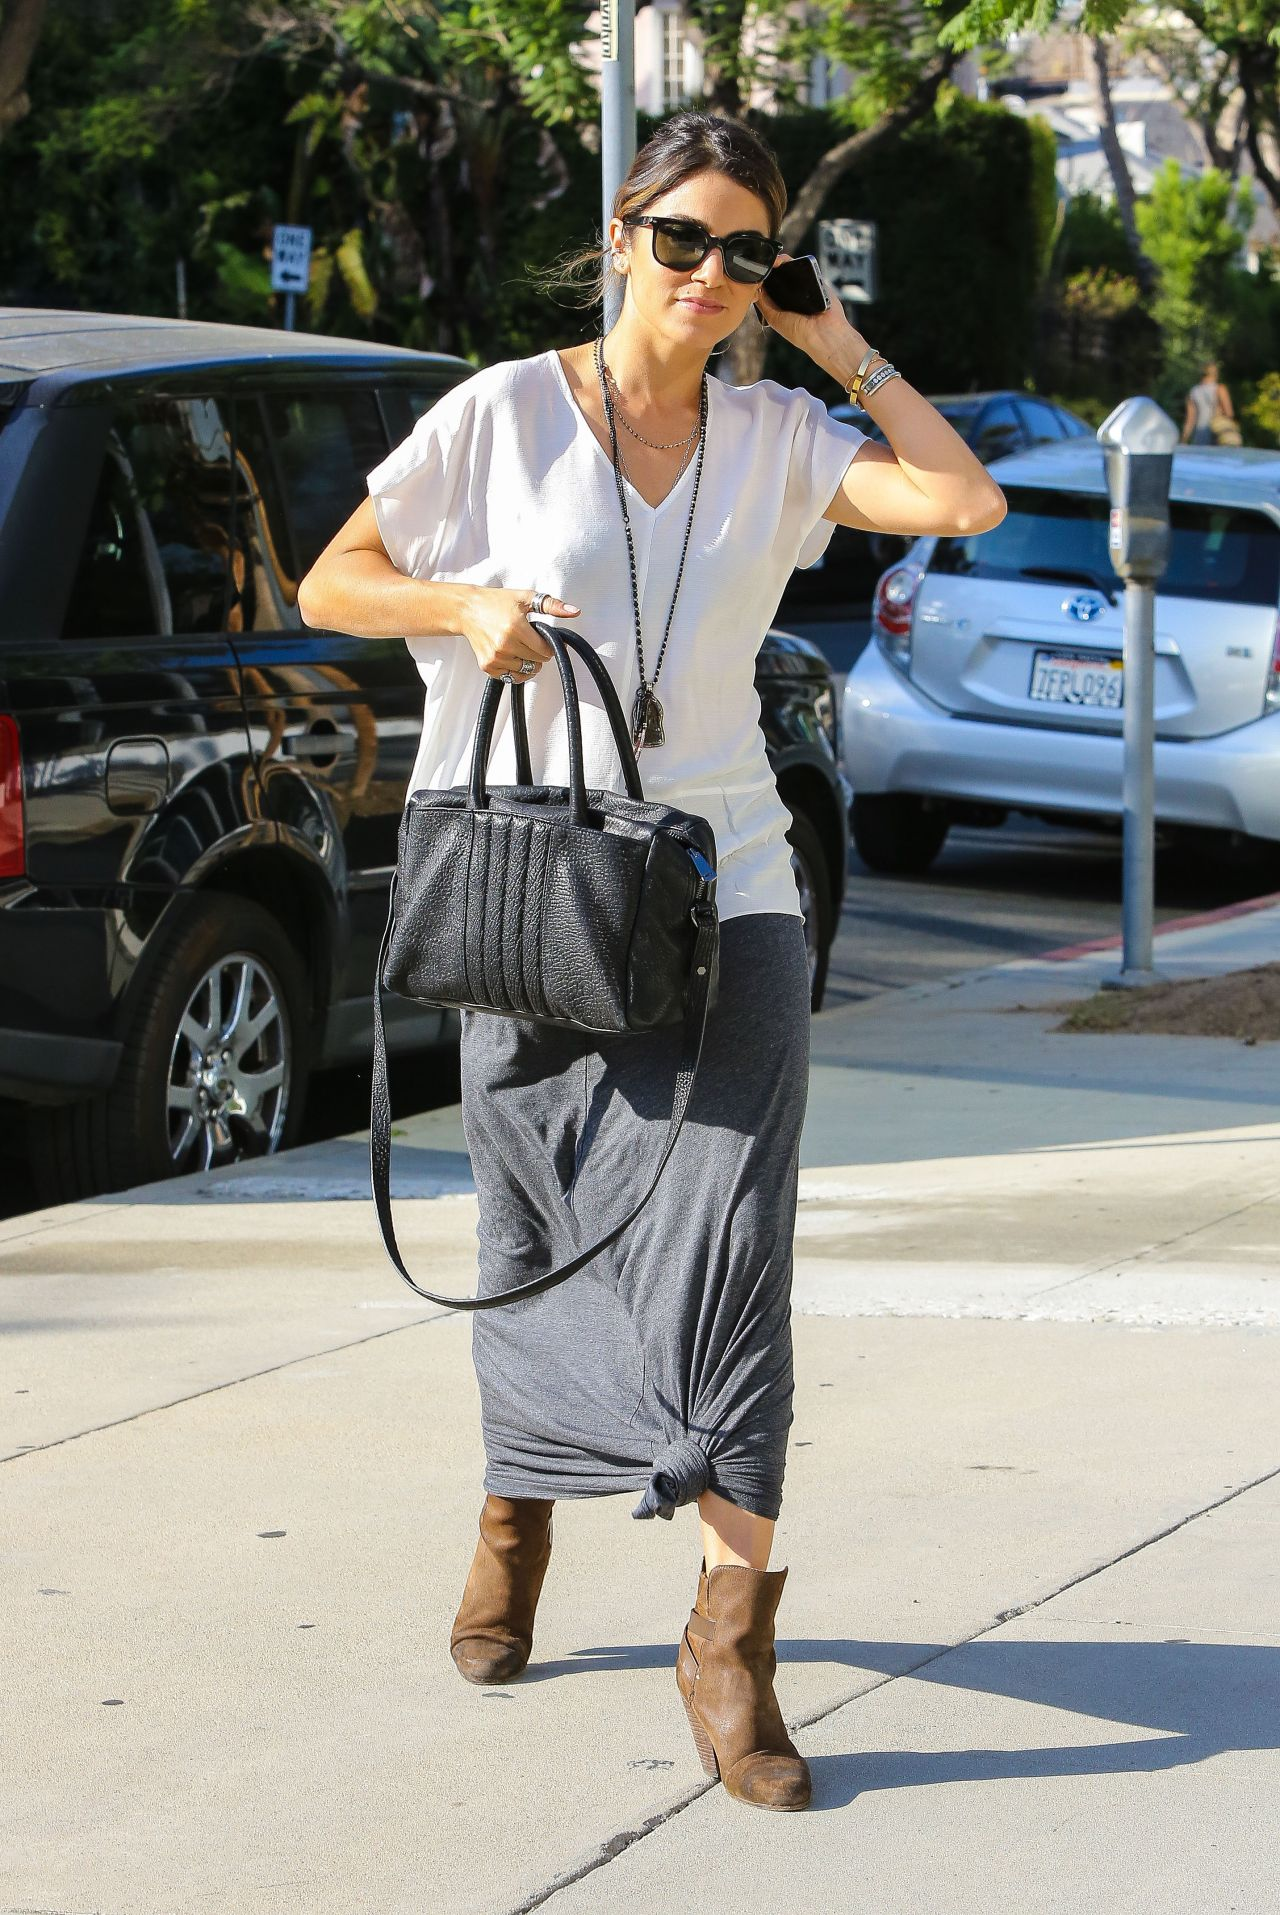 Shake make blog nikki reed 39 s street style looks Fashion style october 2015